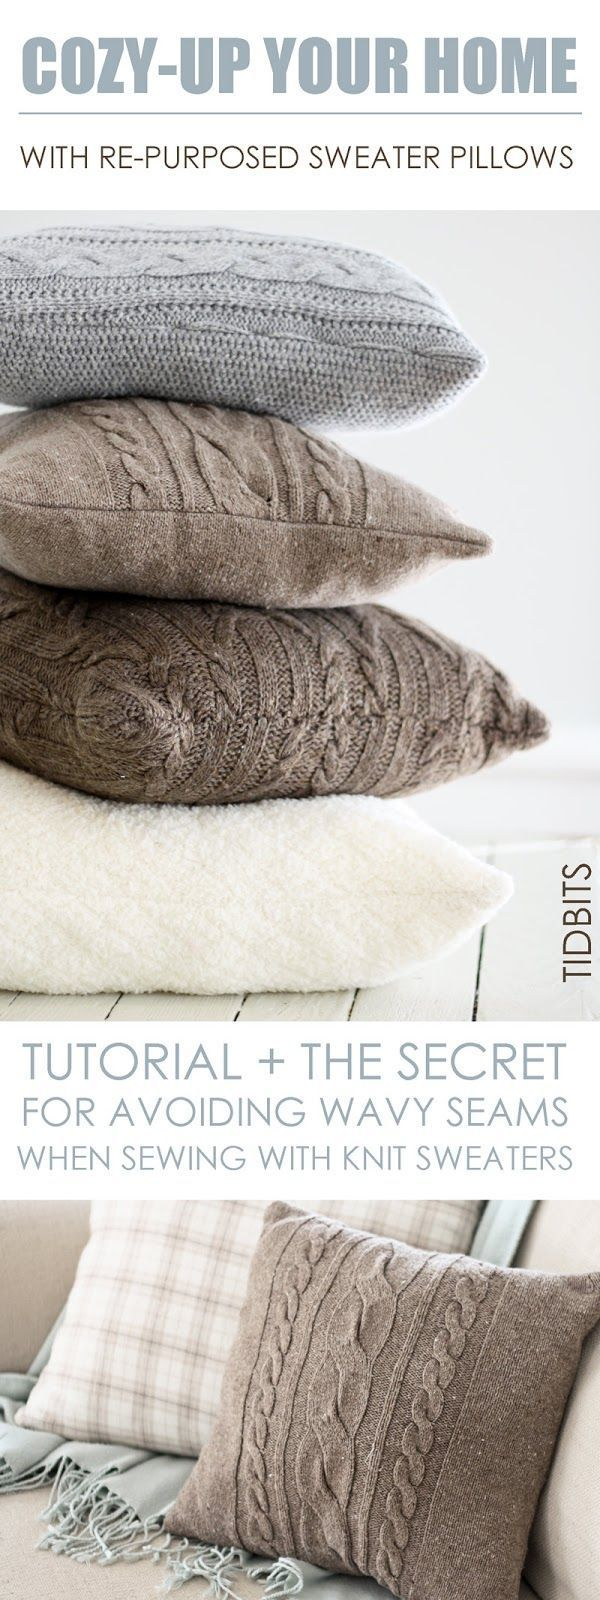 363 best Home Sewing Projects images on Pinterest | Accent pillows ...